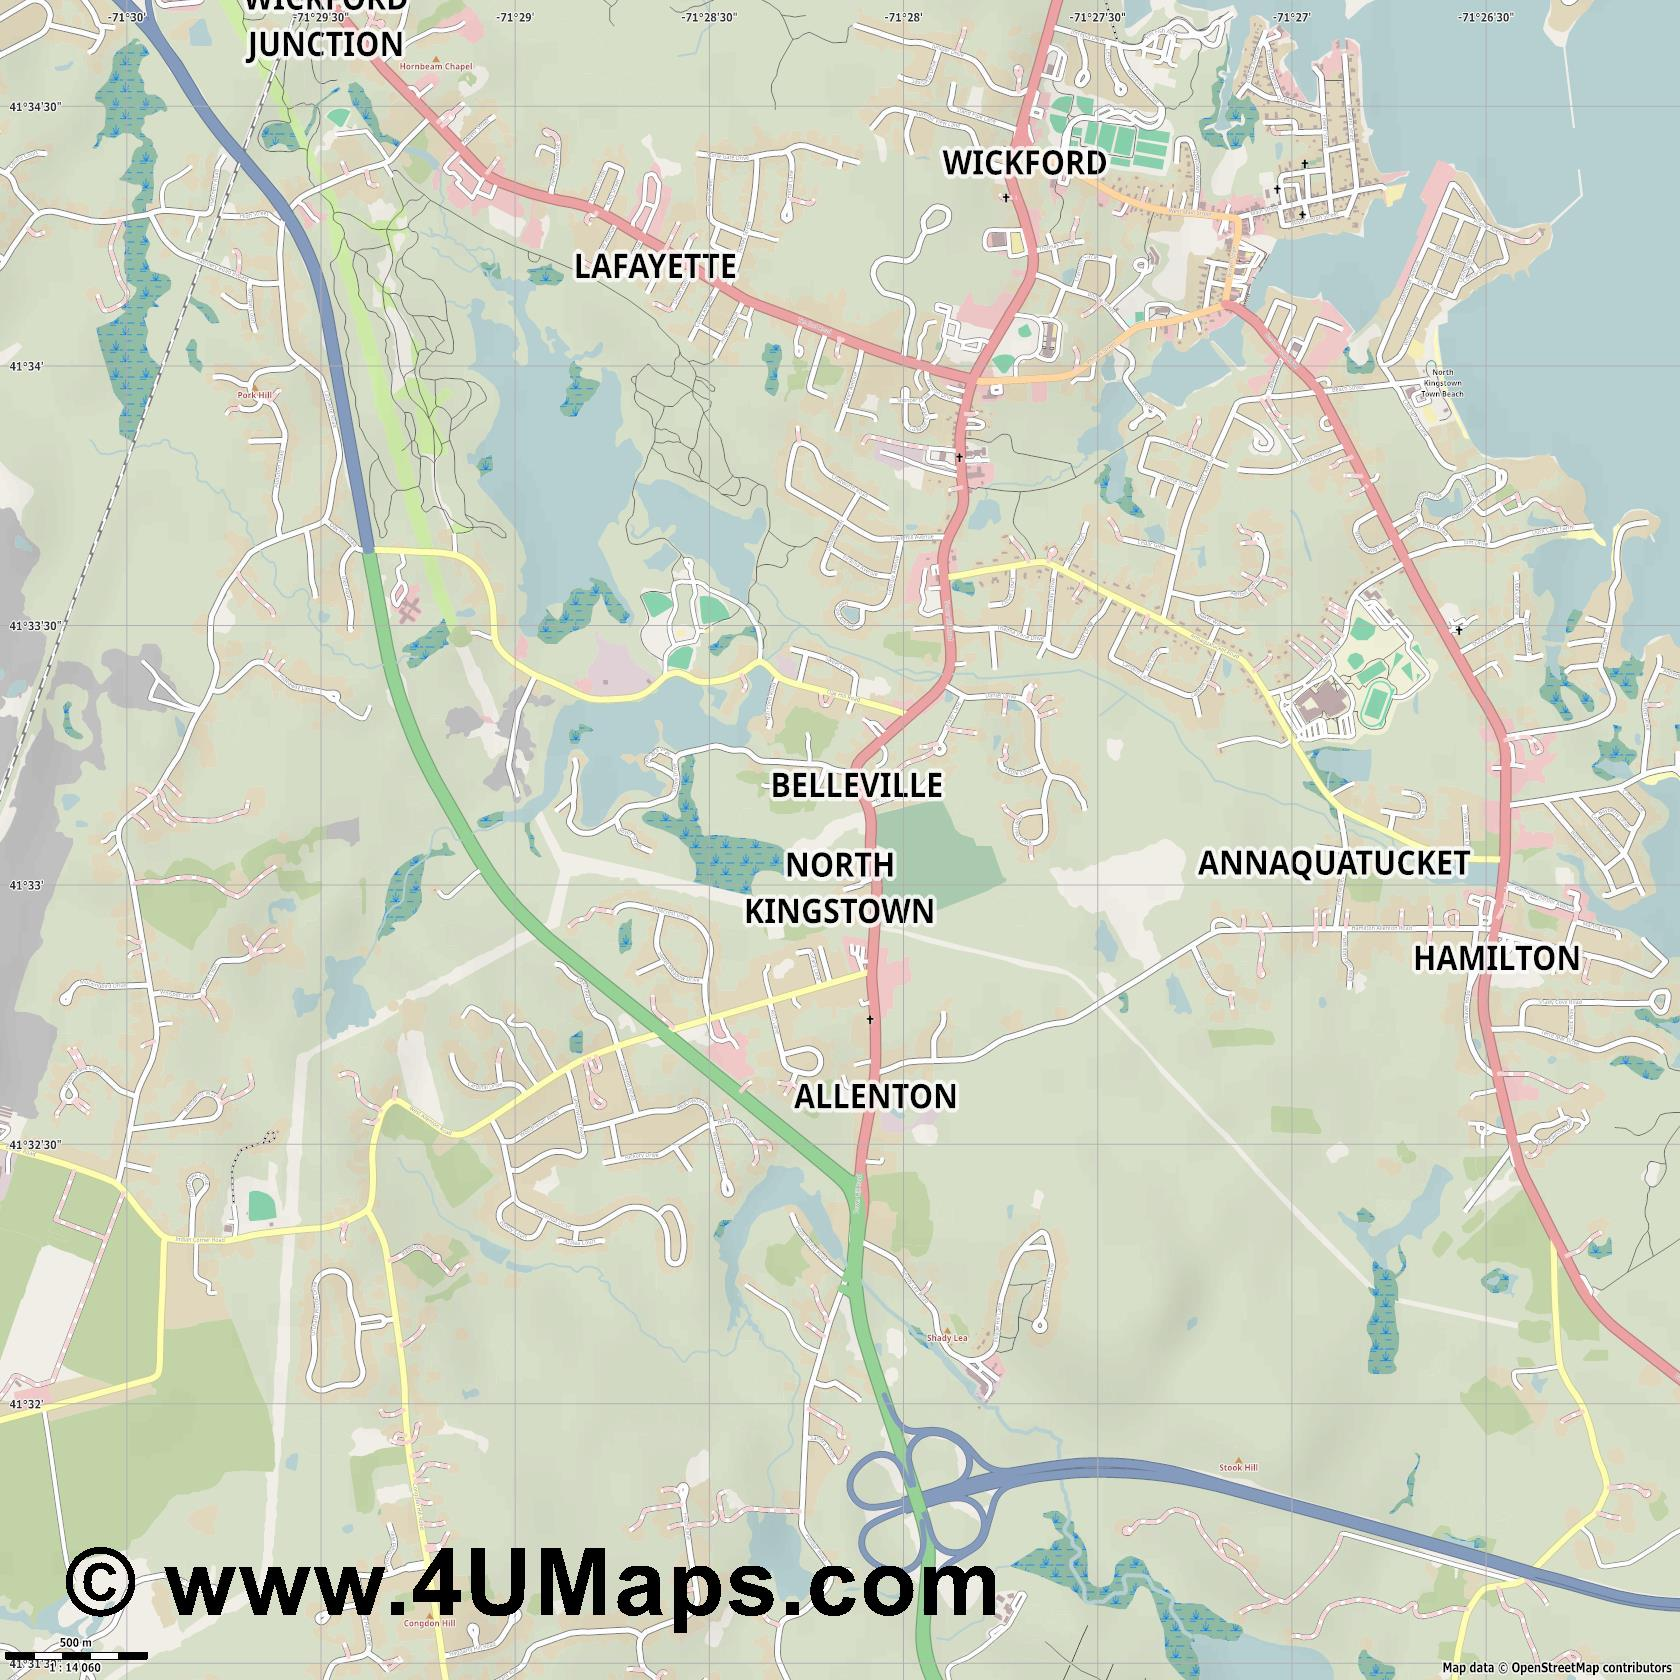 North Kingstown  jpg ultra high detail preview vector city map